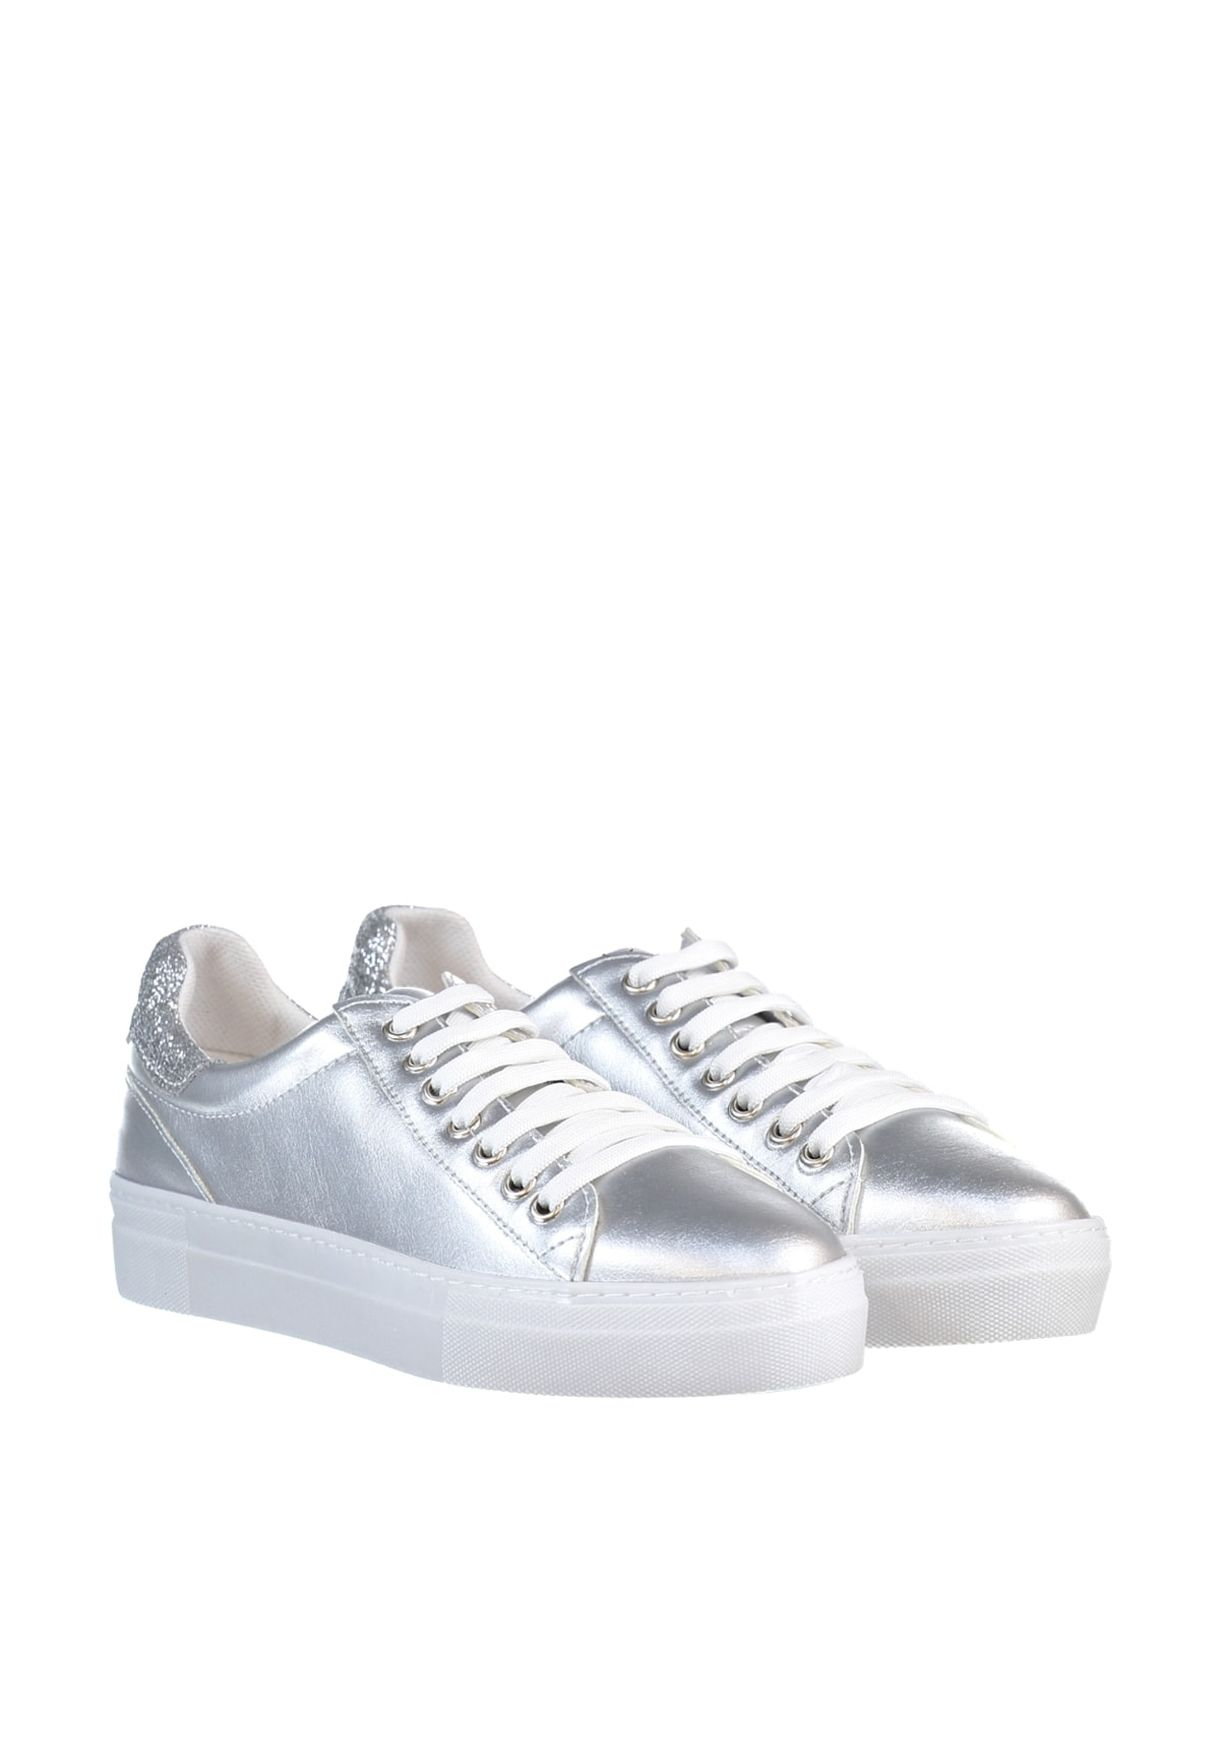 Trendyol Lace Up Low Top Sneaker - Brand Shoes